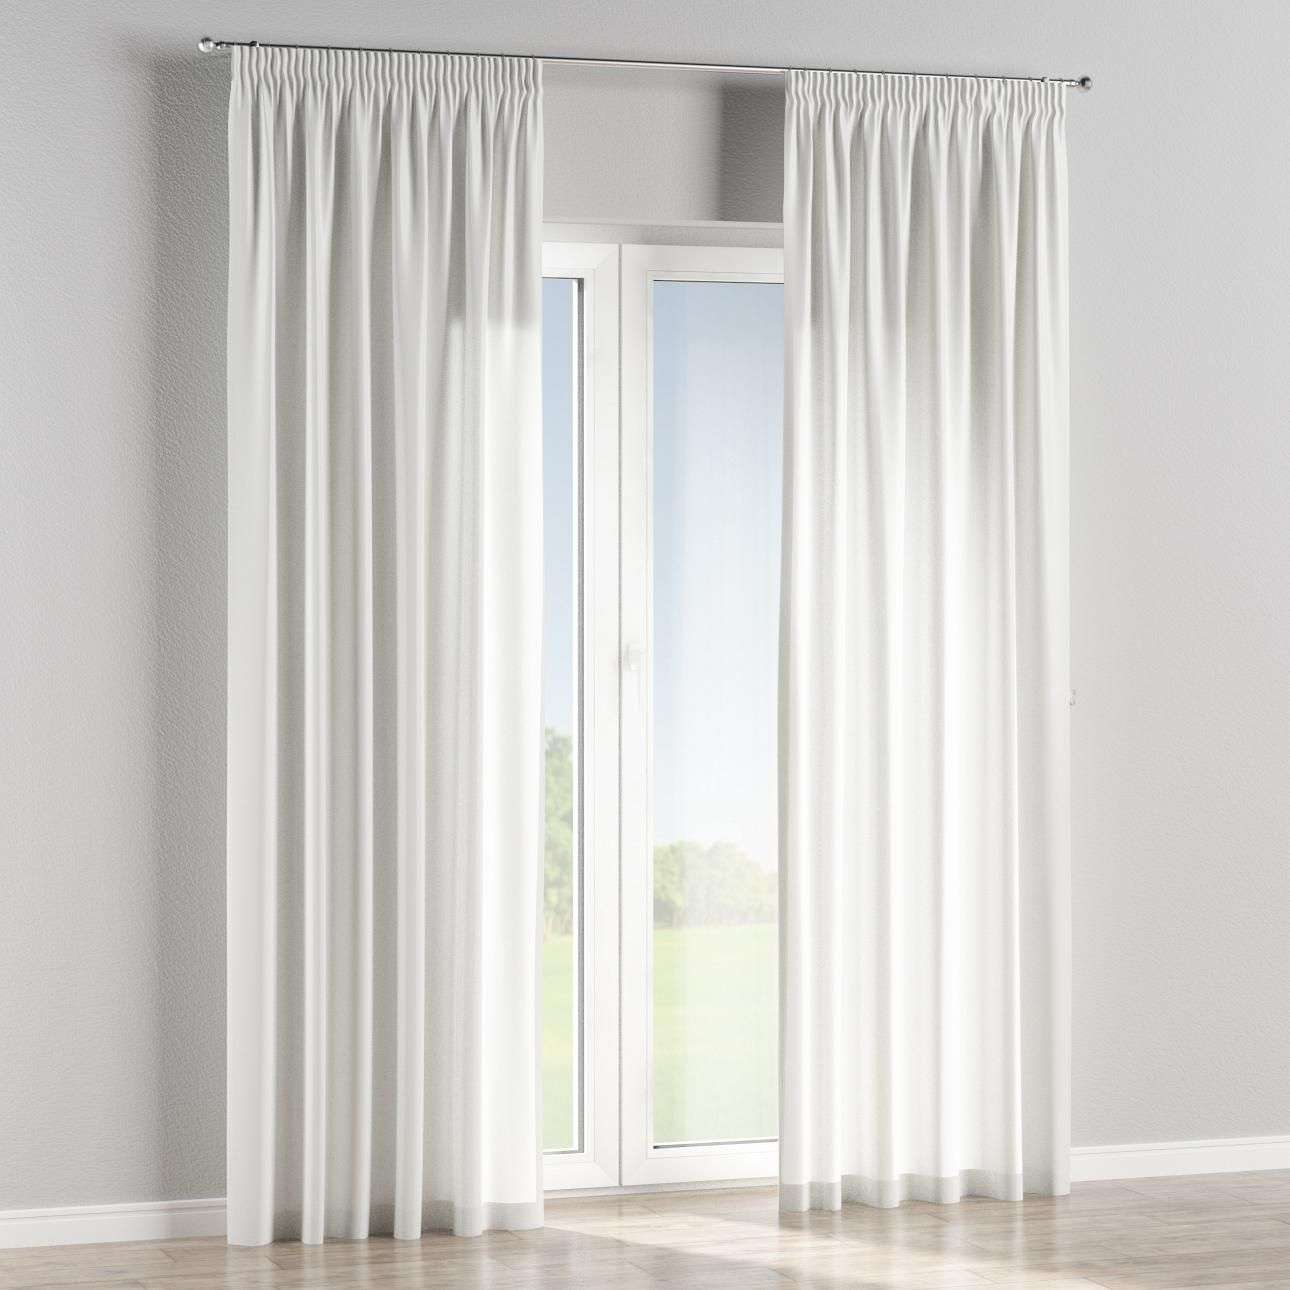 Pencil pleat curtains in collection Rustica, fabric: 138-15